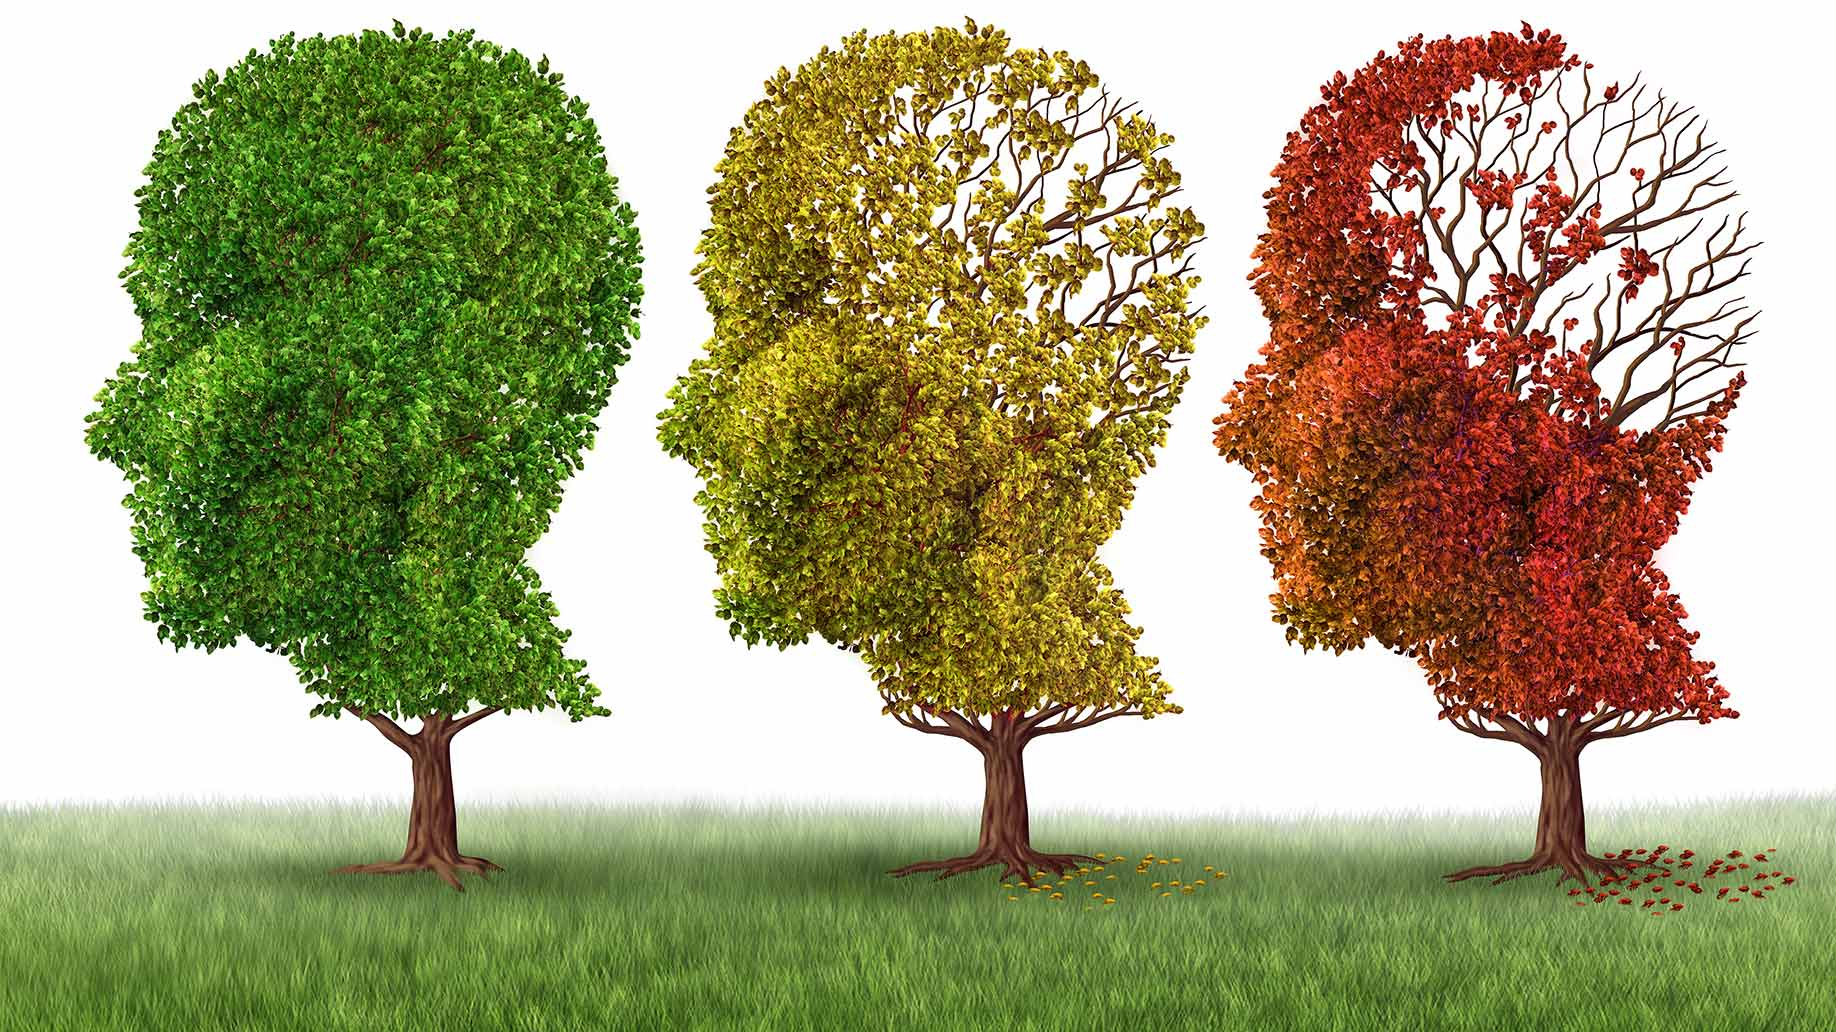 Alzheimers disease dementia memory loss brain cells vitamin d cognition